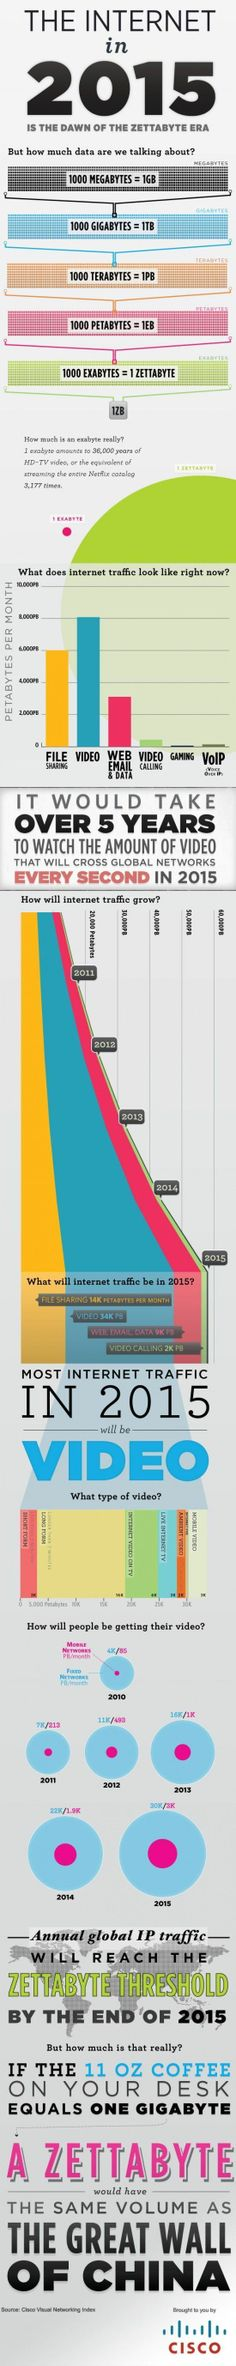 Futuro: infografica su internet nel 2015. An infographic of internet traffic leading up to its peak in 2015.